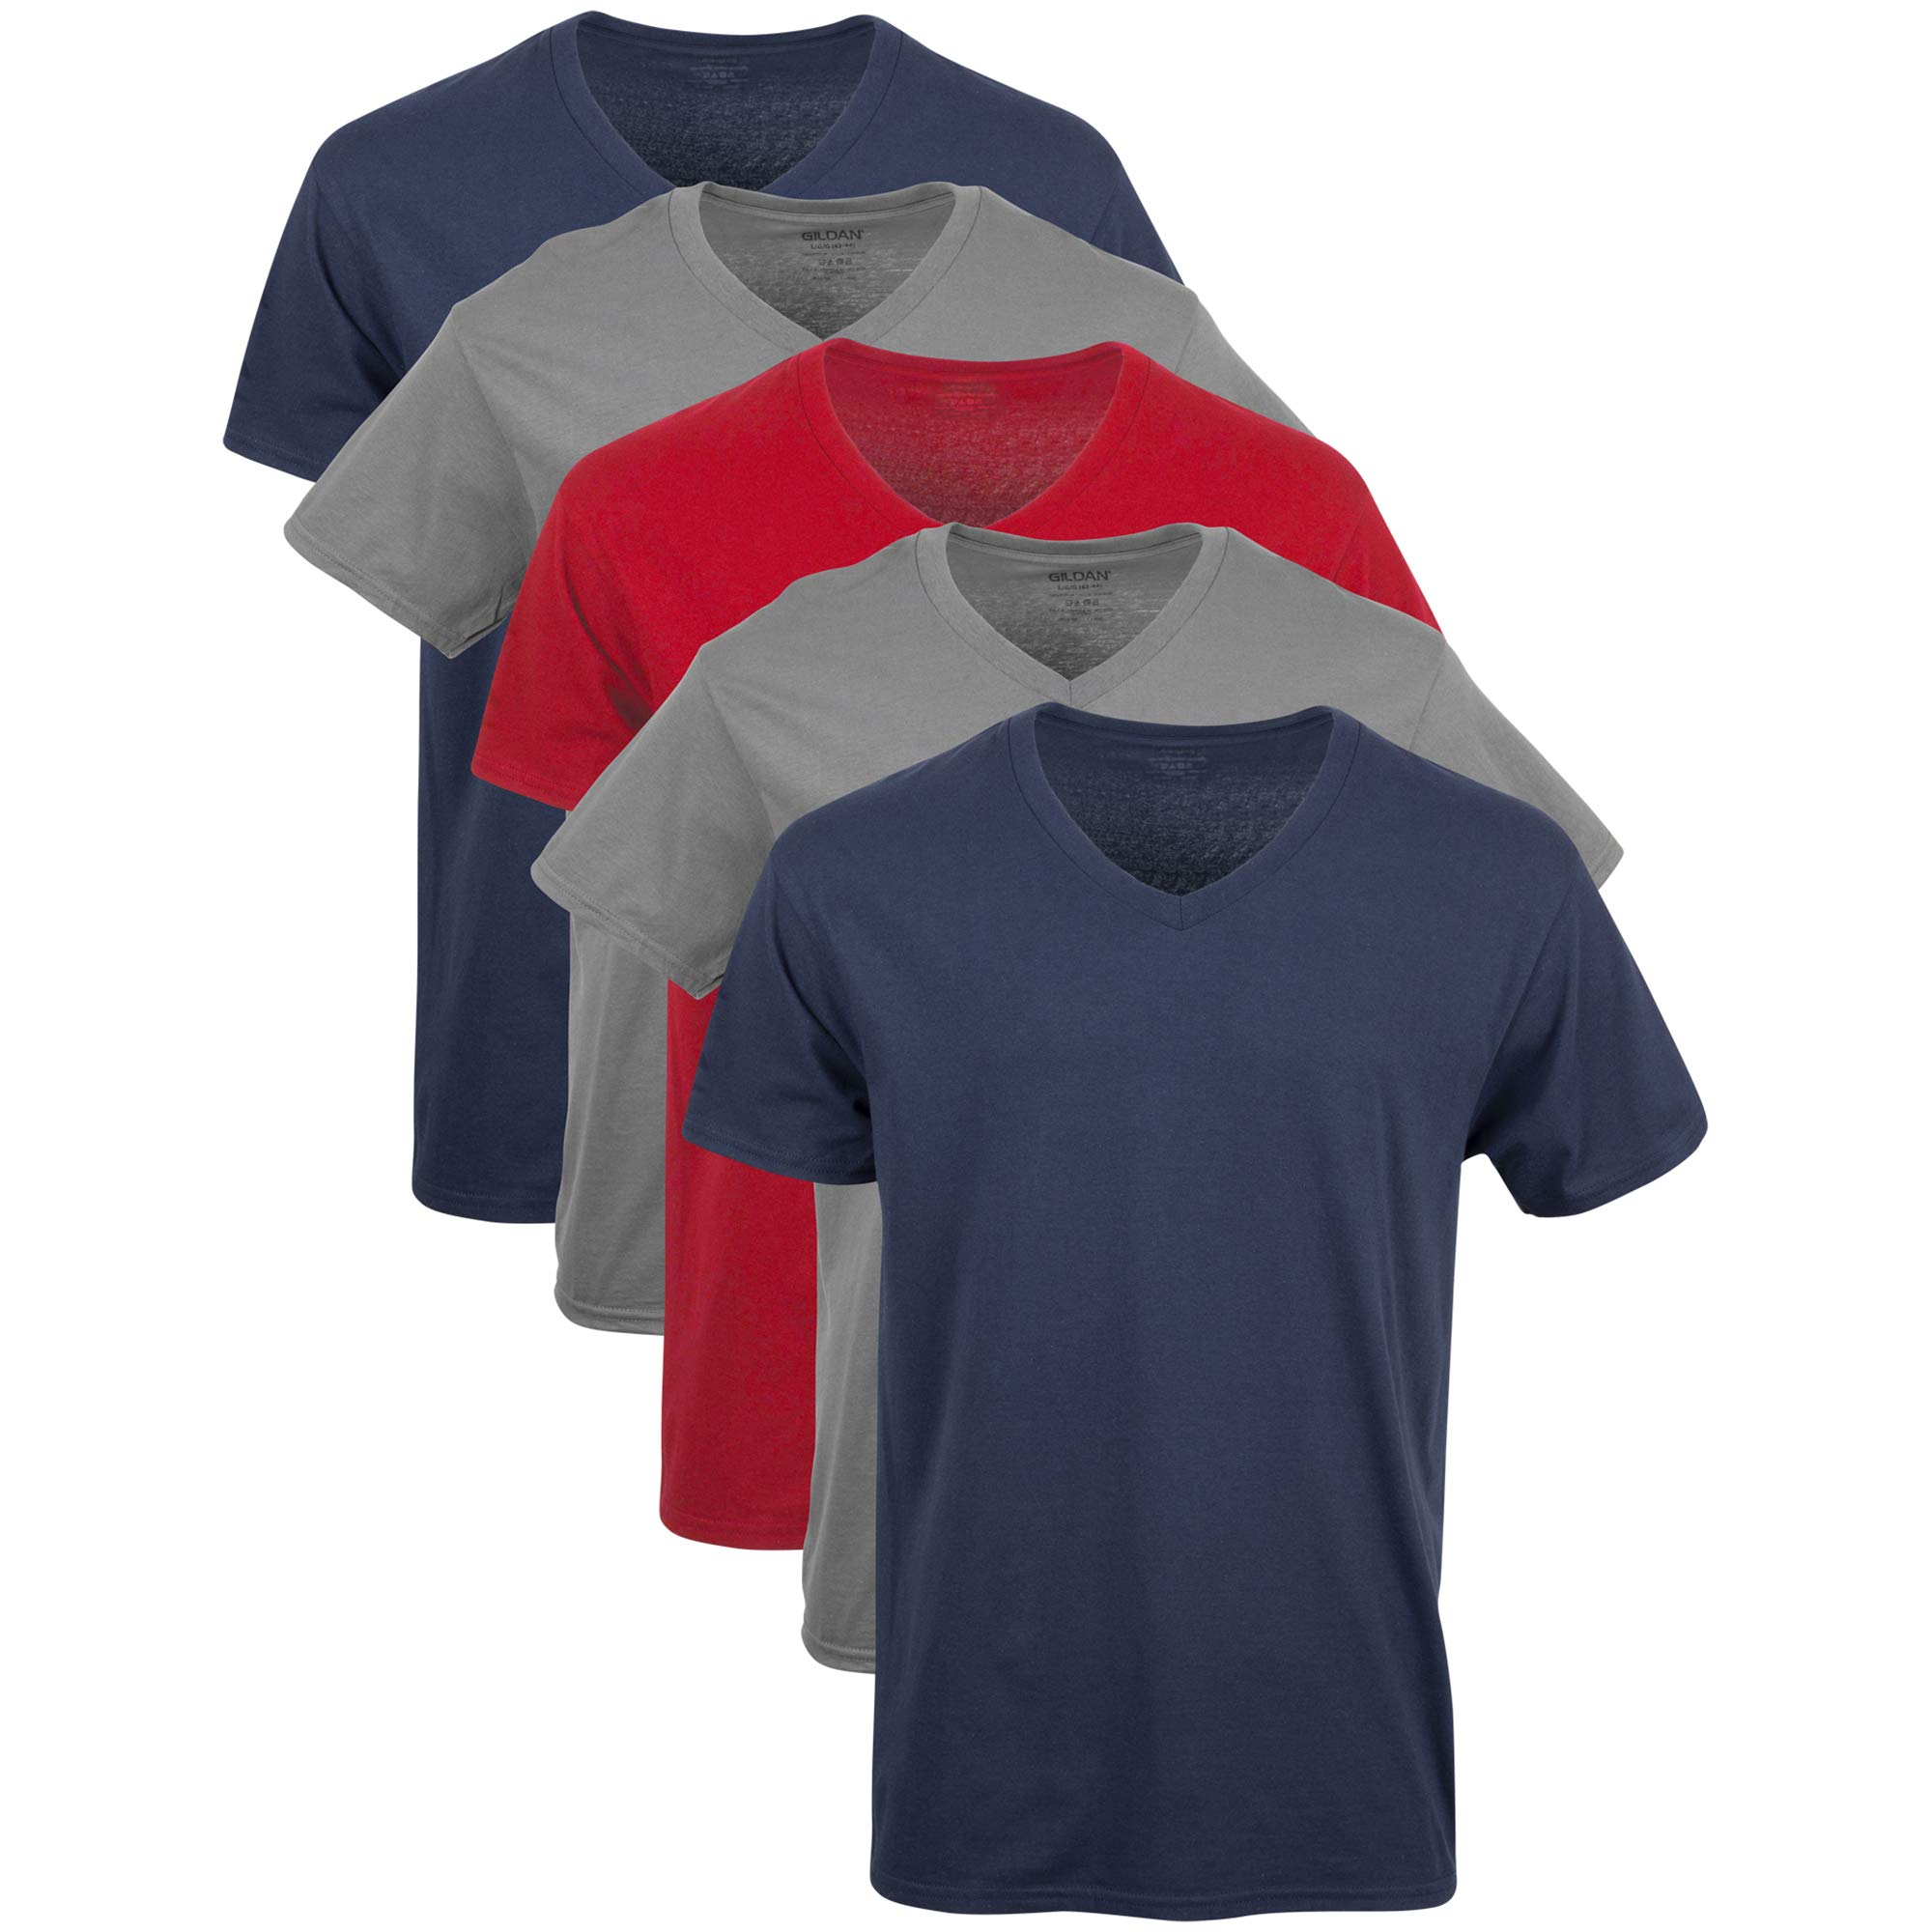 Gildan Men's V-Neck T-Shirts Multipack